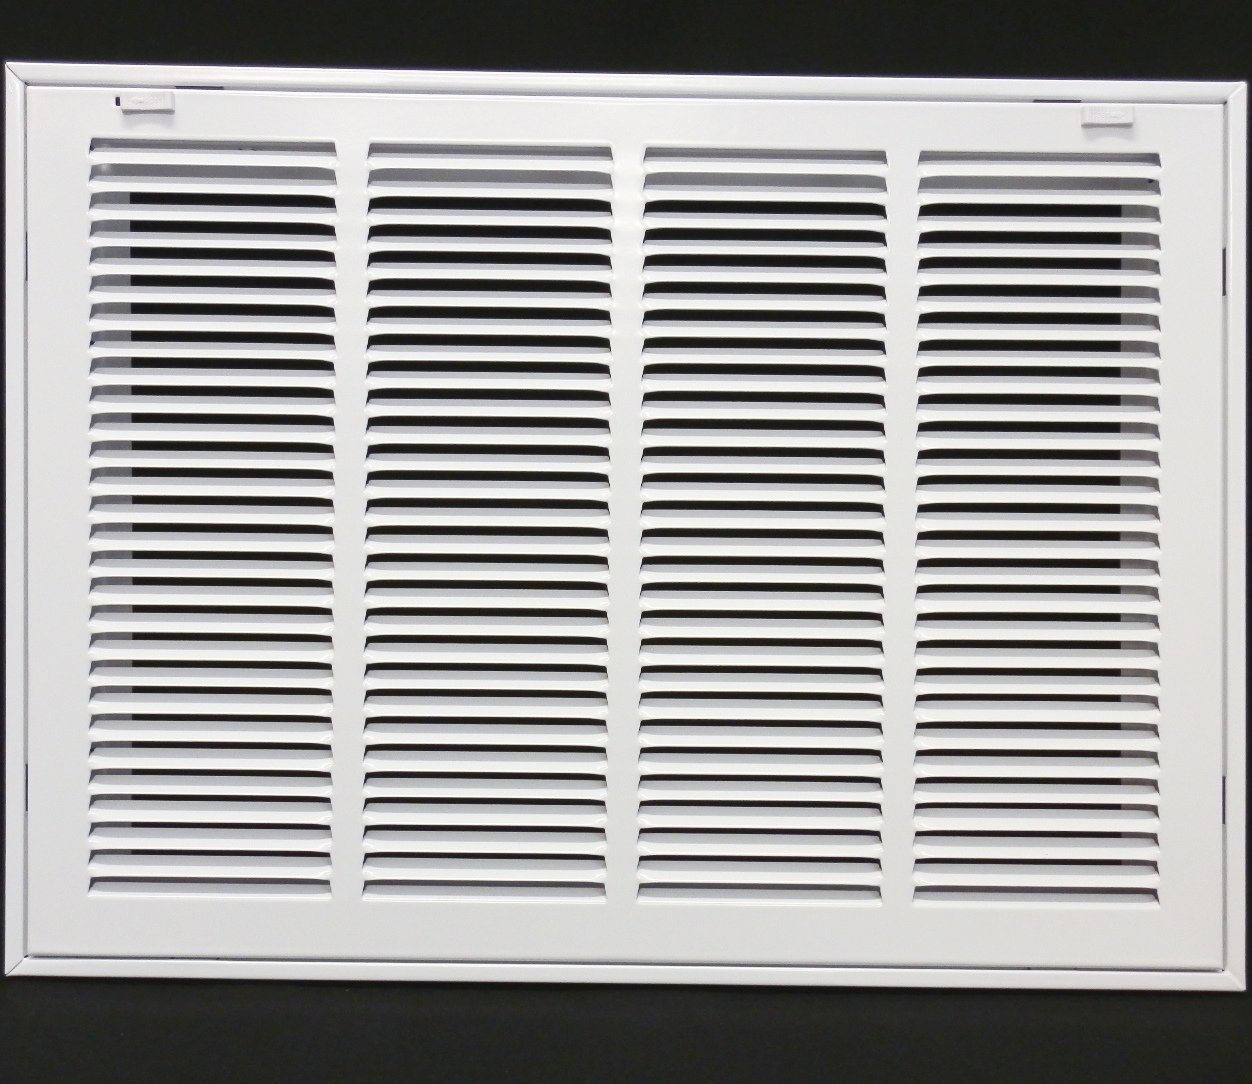 20'' X 12 Steel Return Air Filter Grille for 1'' Filter - Removable Face/Door - HVAC DUCT COVER - Flat Stamped Face - White [Outer Dimensions: 22.5''w X 14.5''h]